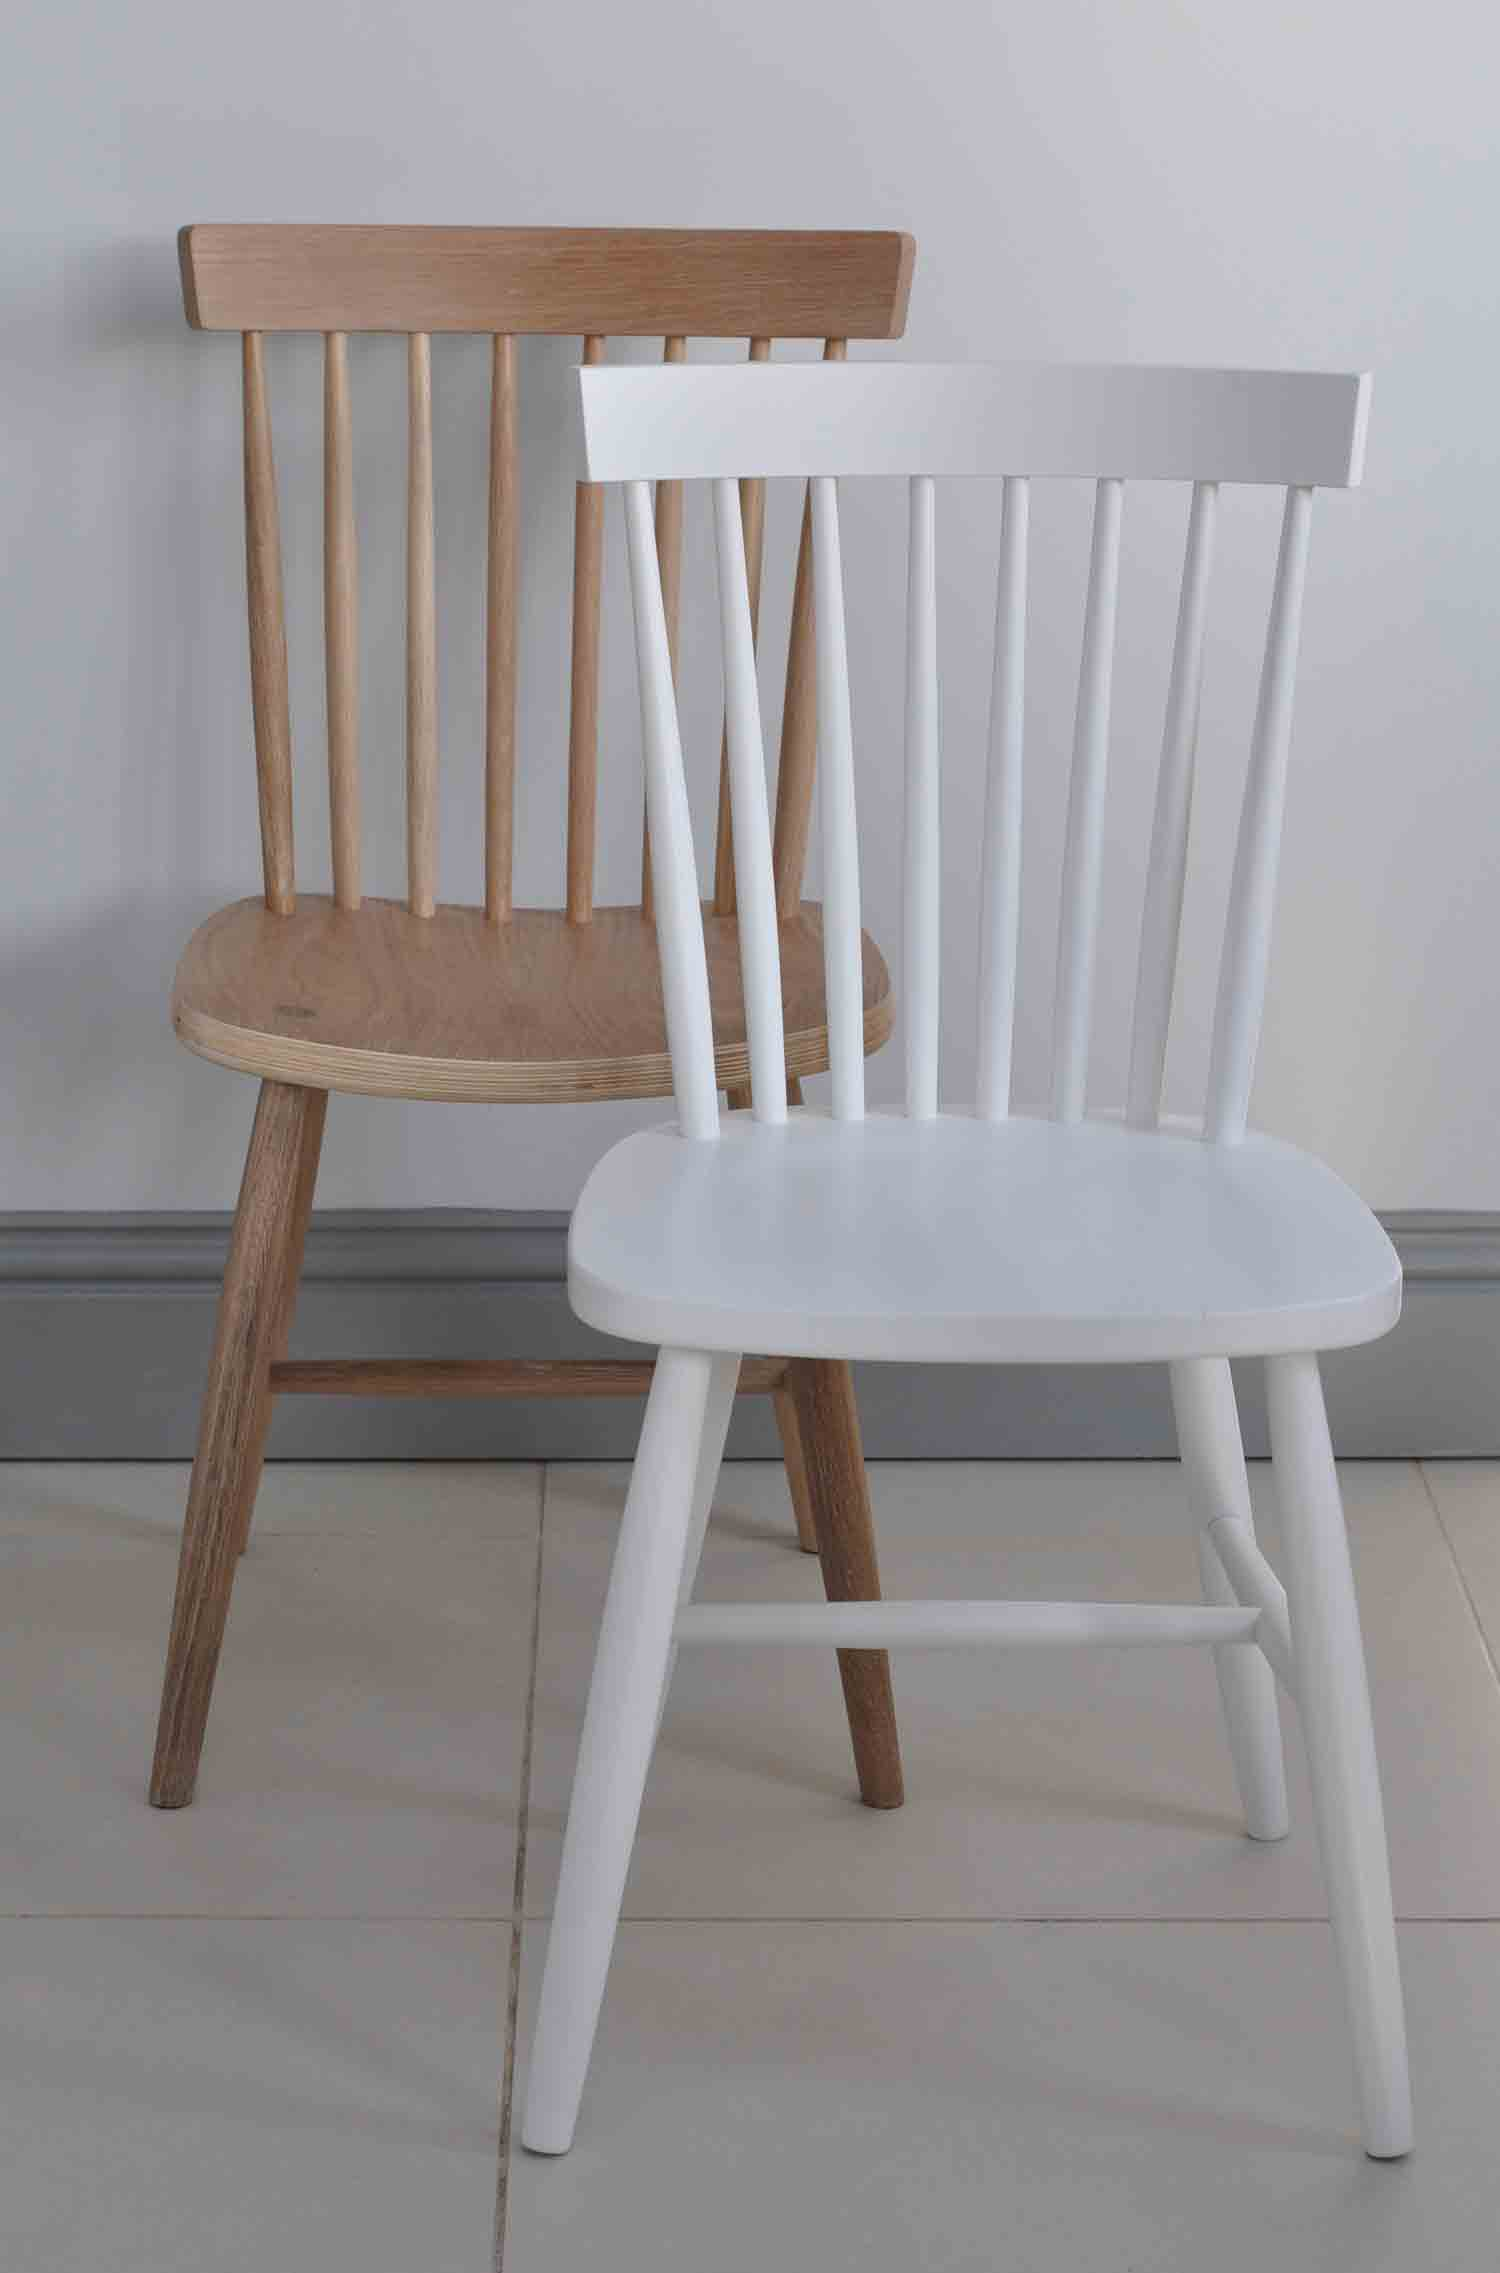 Oak Oxford Spindle Back Dining Chair - White Painted or Limed Natural Oak